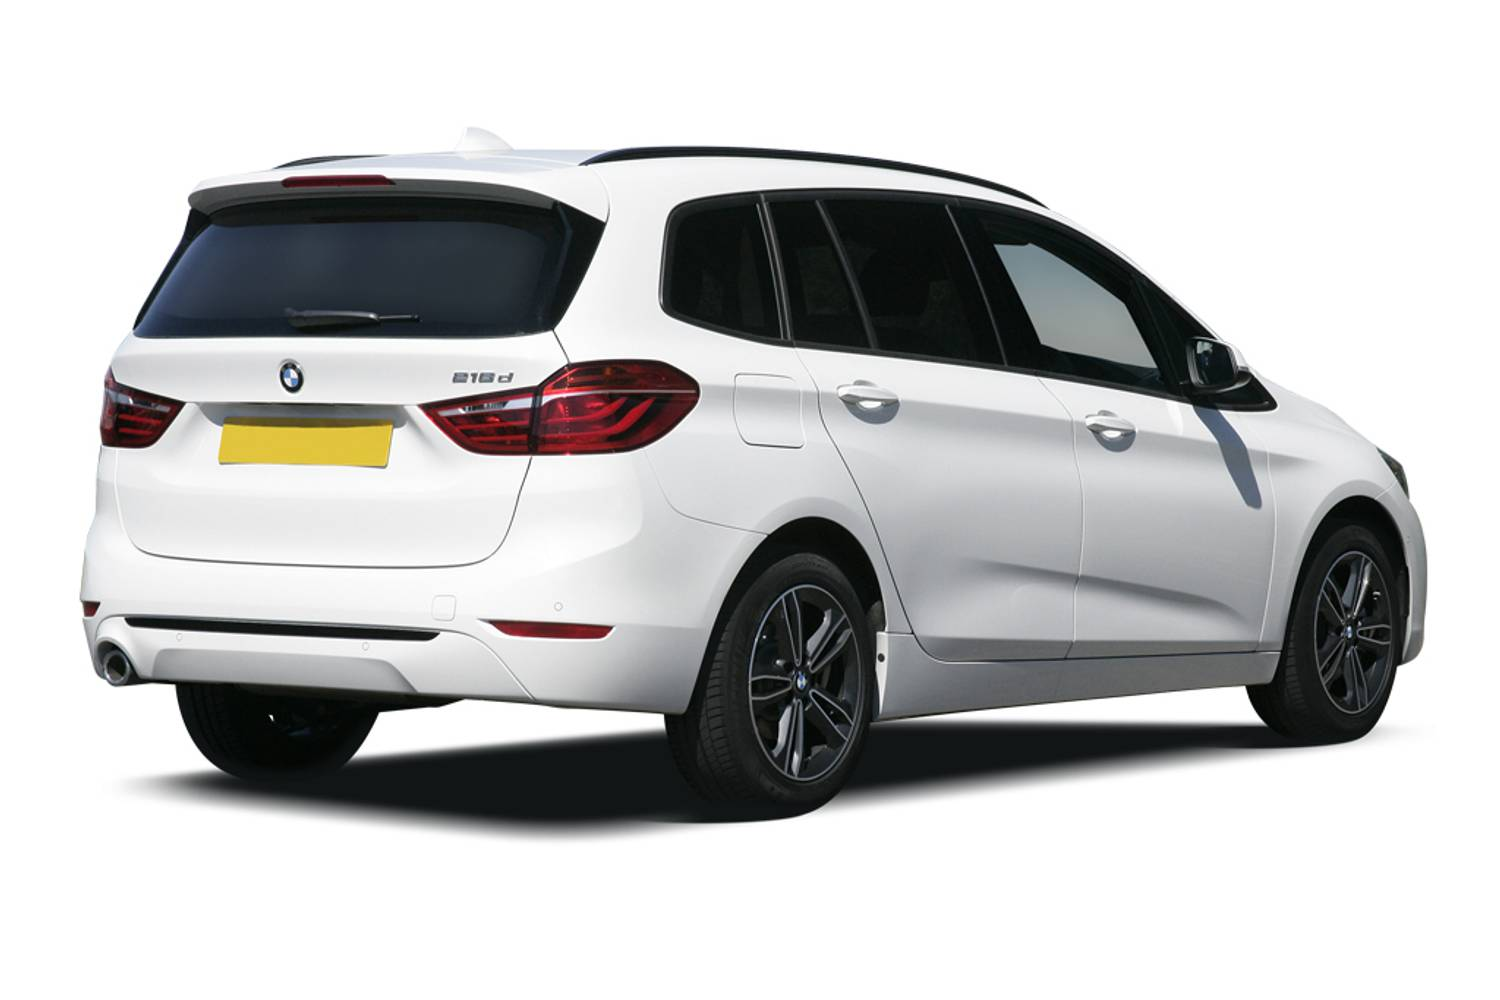 BMW 2 Series Gran Tourer 5dr Rear Three Quarter